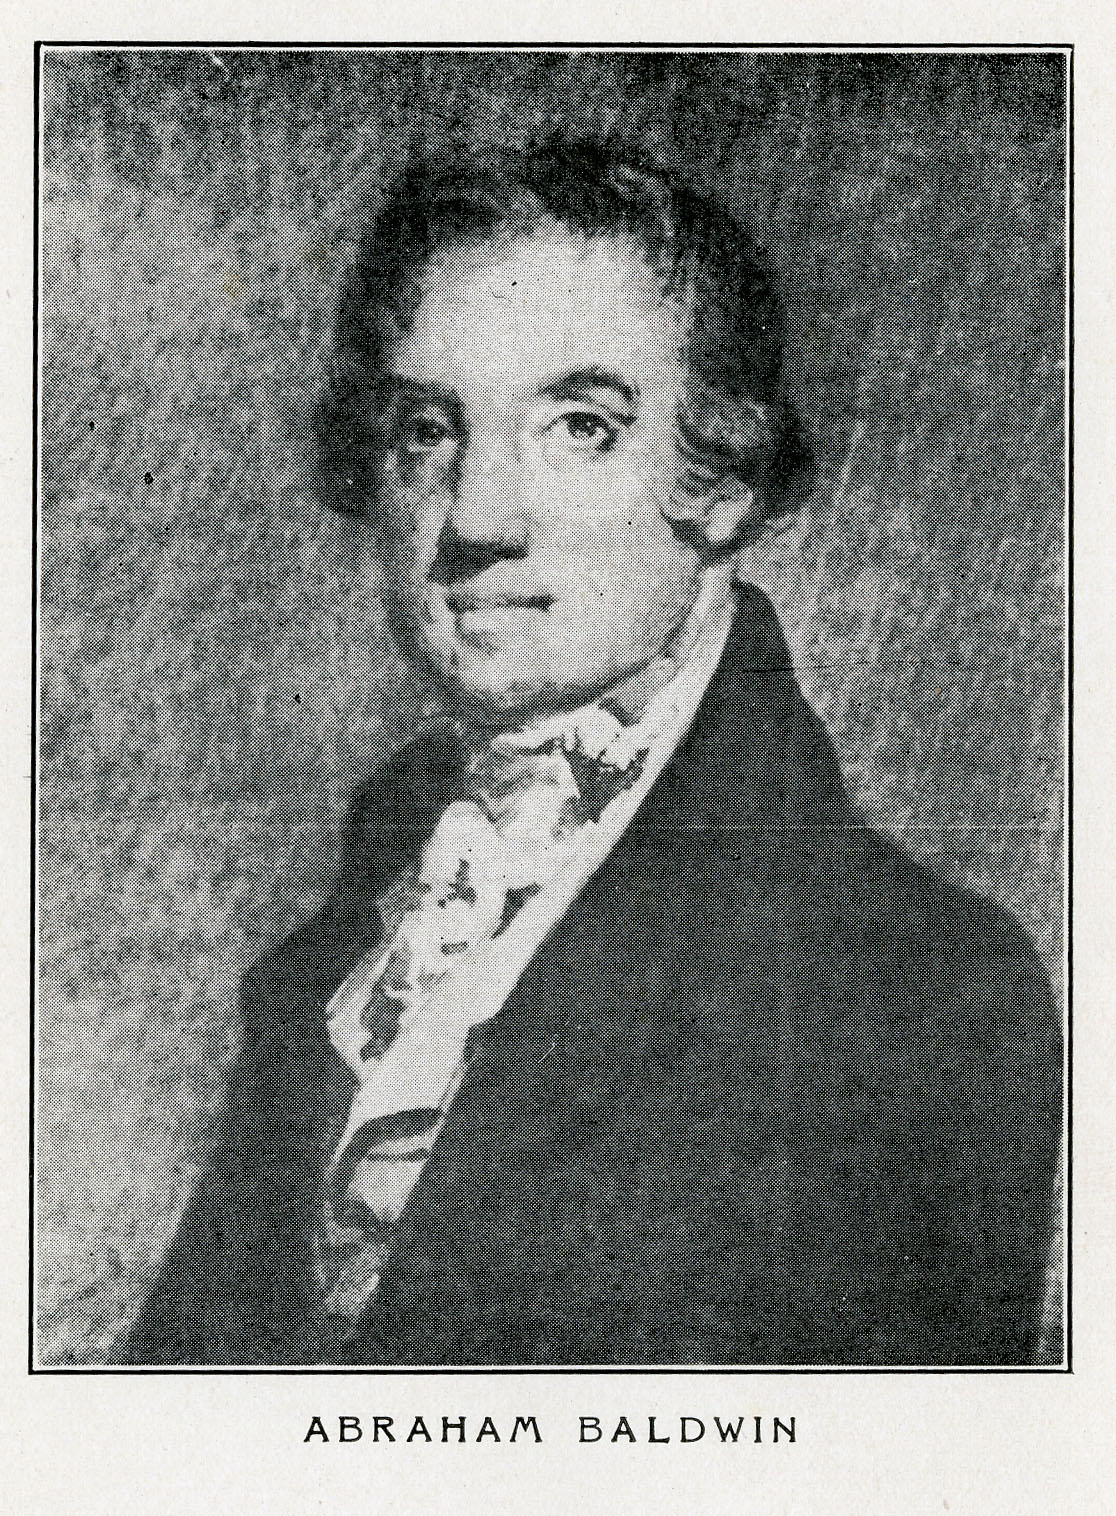 Abraham Baldwin Sketch. Georgia Historical Society Main Collection E302.6.B17 W5